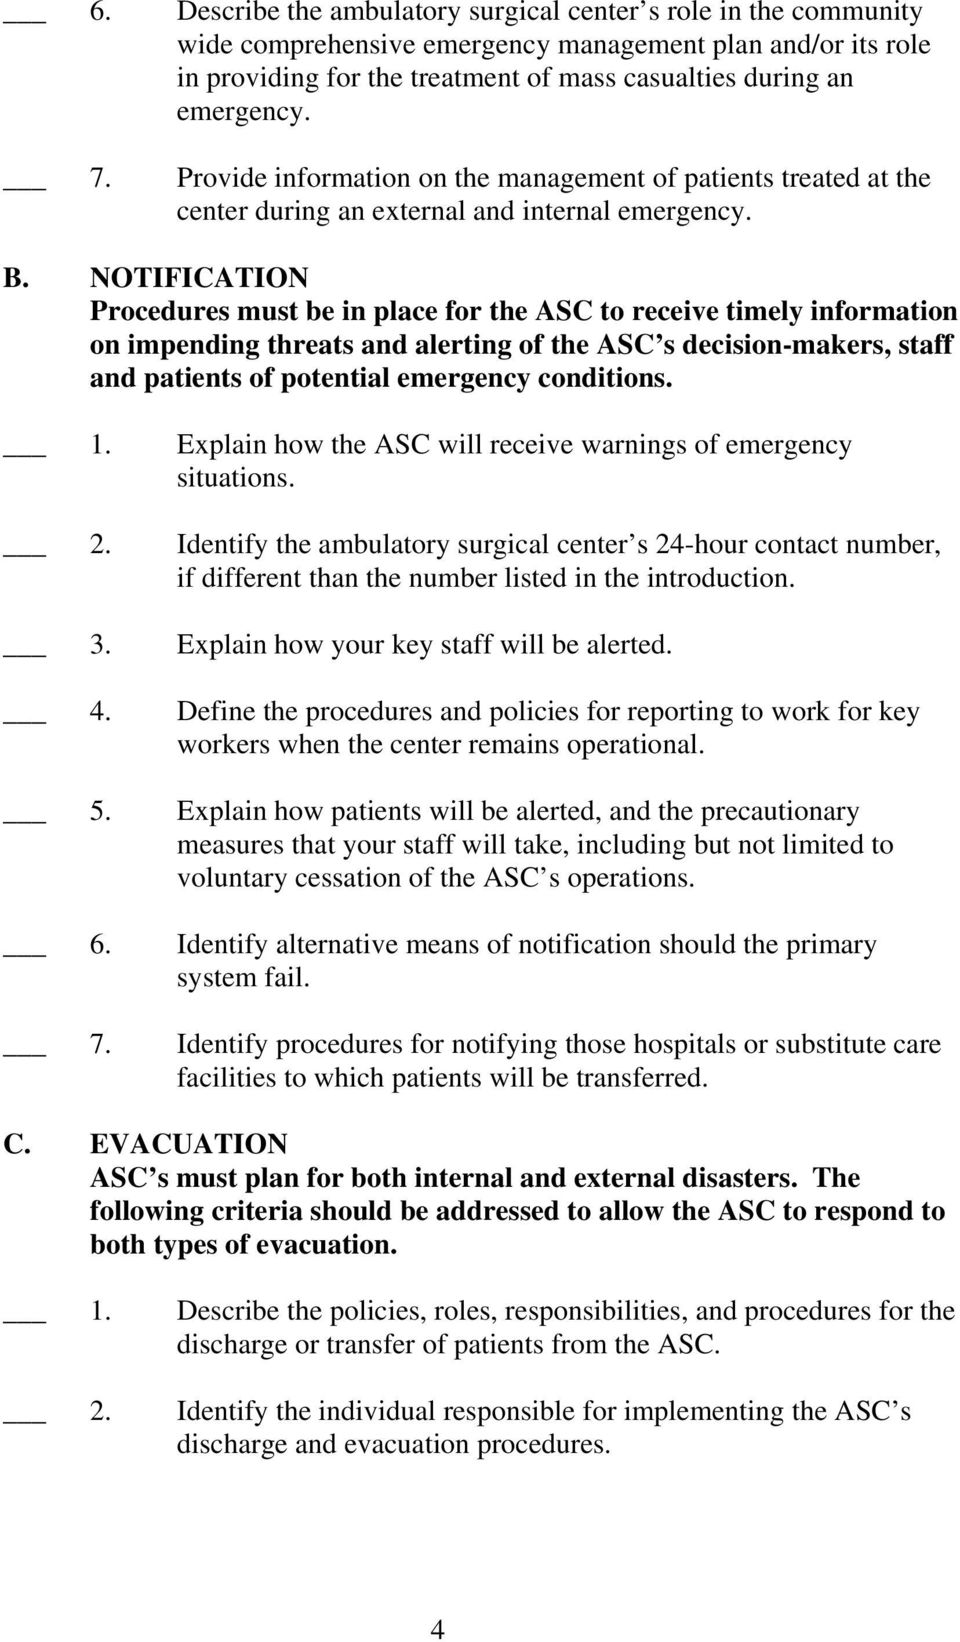 NOTIFICATION Procedures must be in place for the ASC to receive timely information on impending threats and alerting of the ASC s decision-makers, staff and patients of potential emergency conditions.